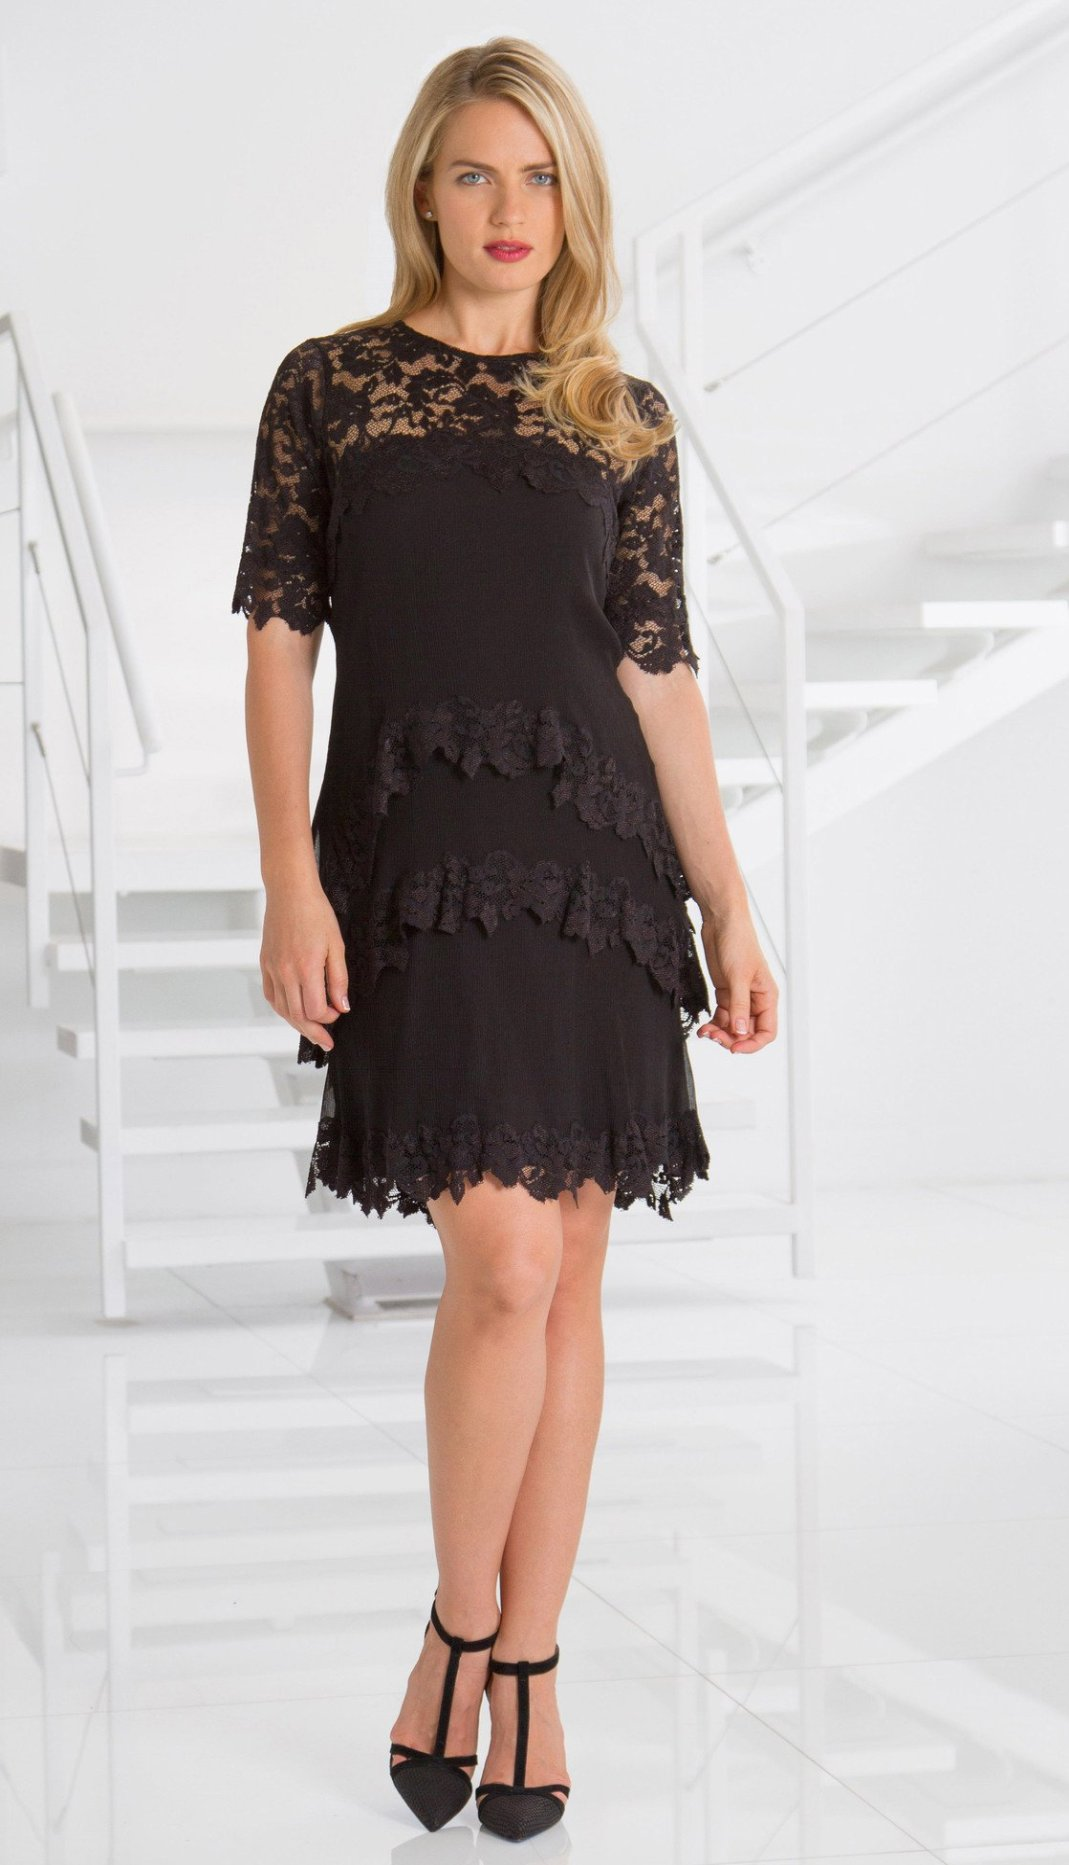 French Lace Dress - Sara Mique Evening Wear